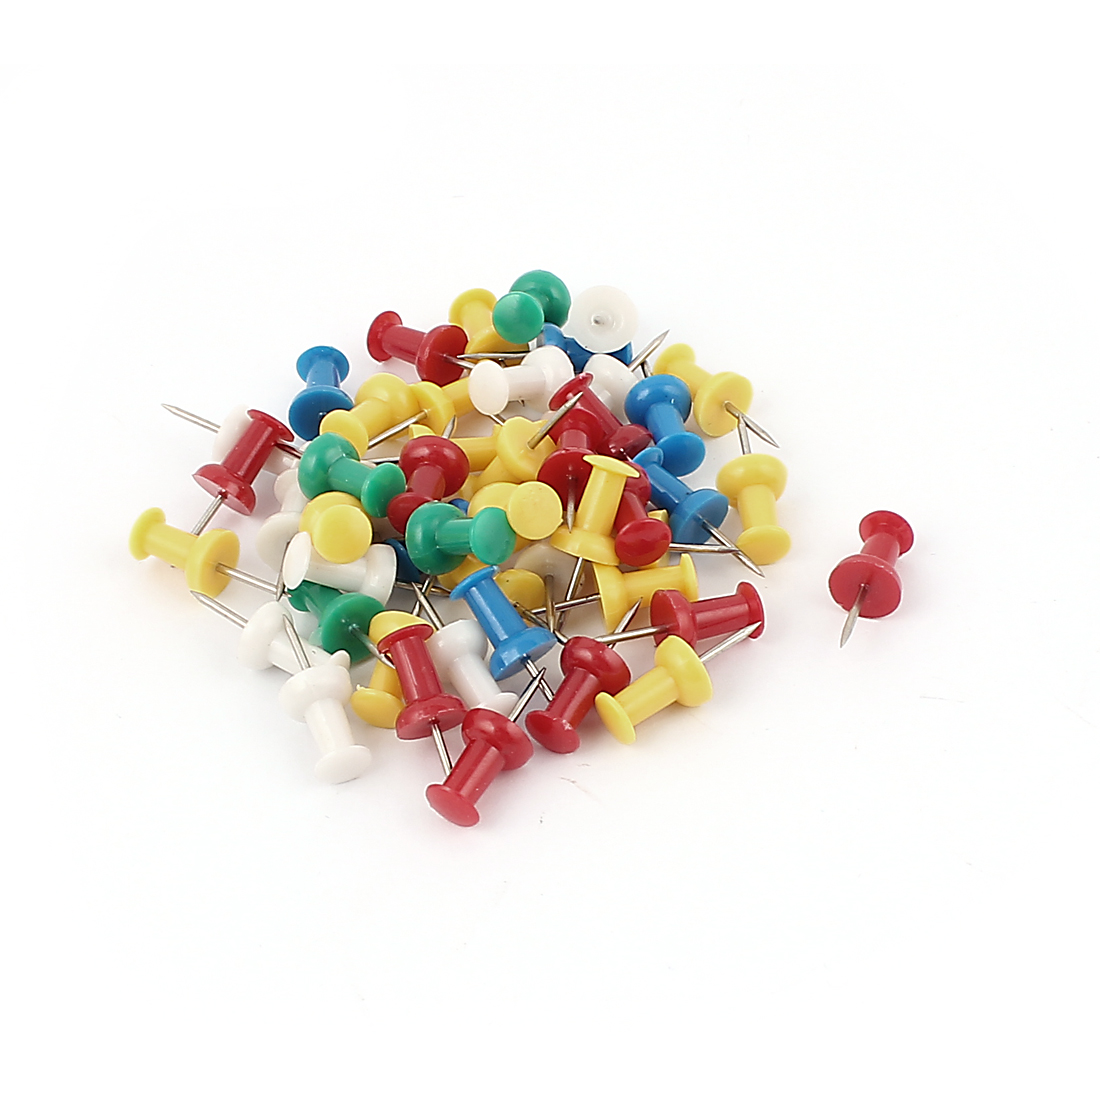 Unique Bargains 50 Pcs Home/Office Plastic Coated Round Board Map Push Pins Thumbtacks Assorted Color